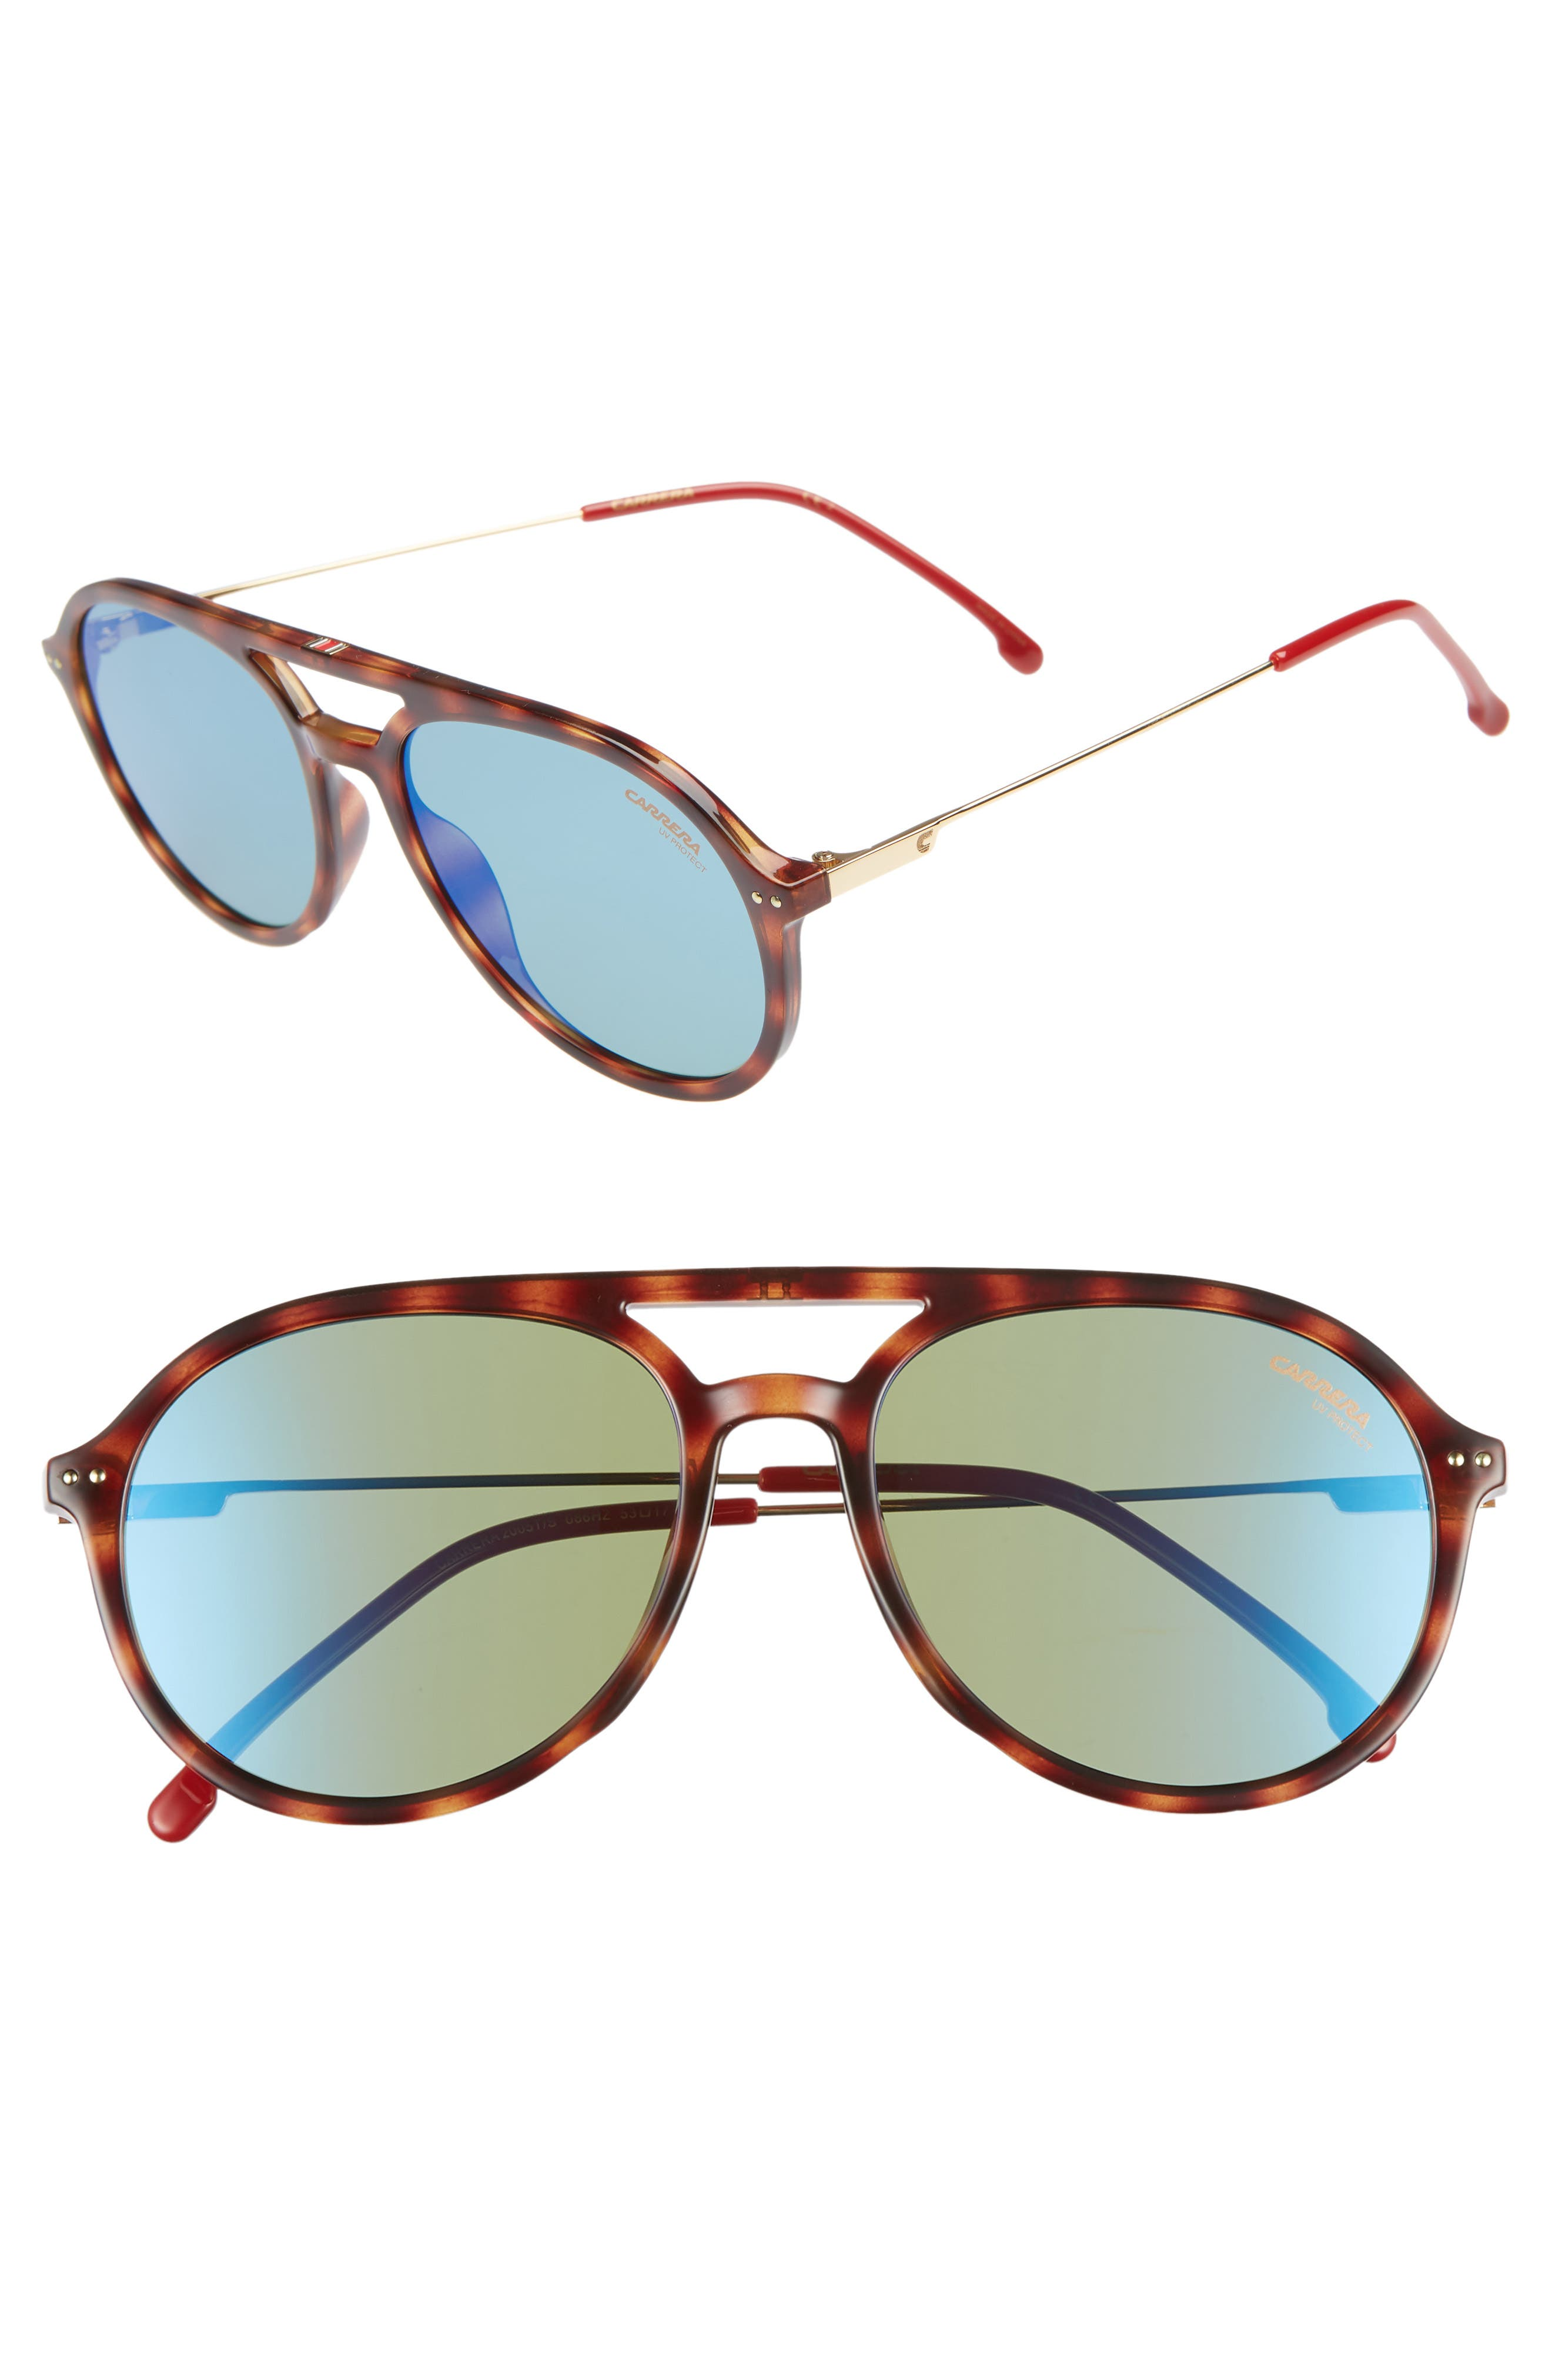 Carrera Eyewear 5m Aviator Sunglasses - Dark Havana